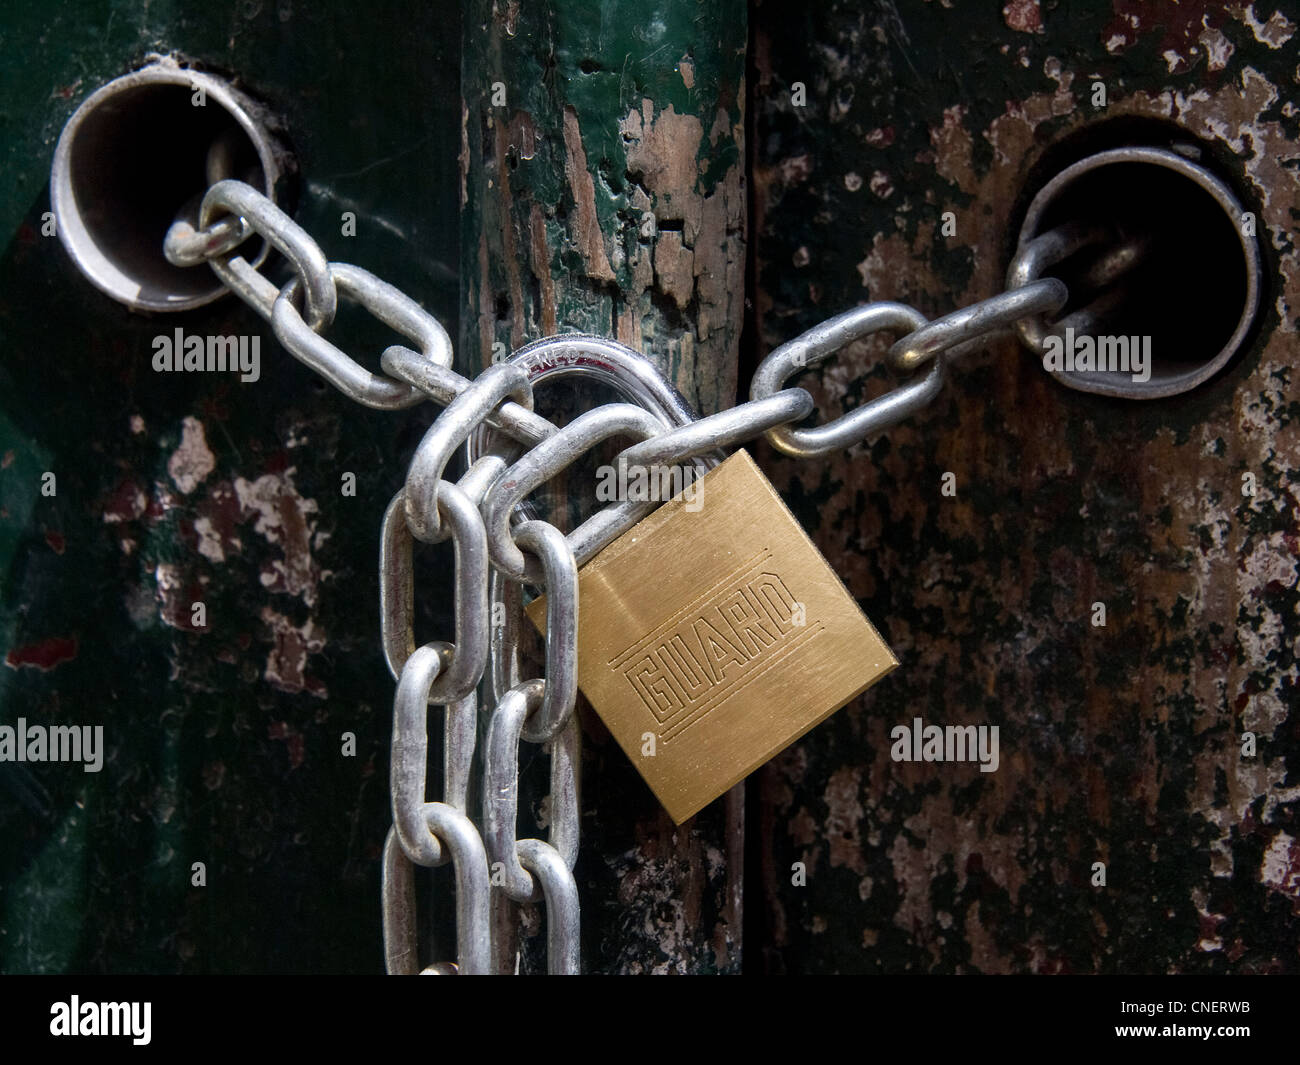 Padlock and chains on door house - Stock Image